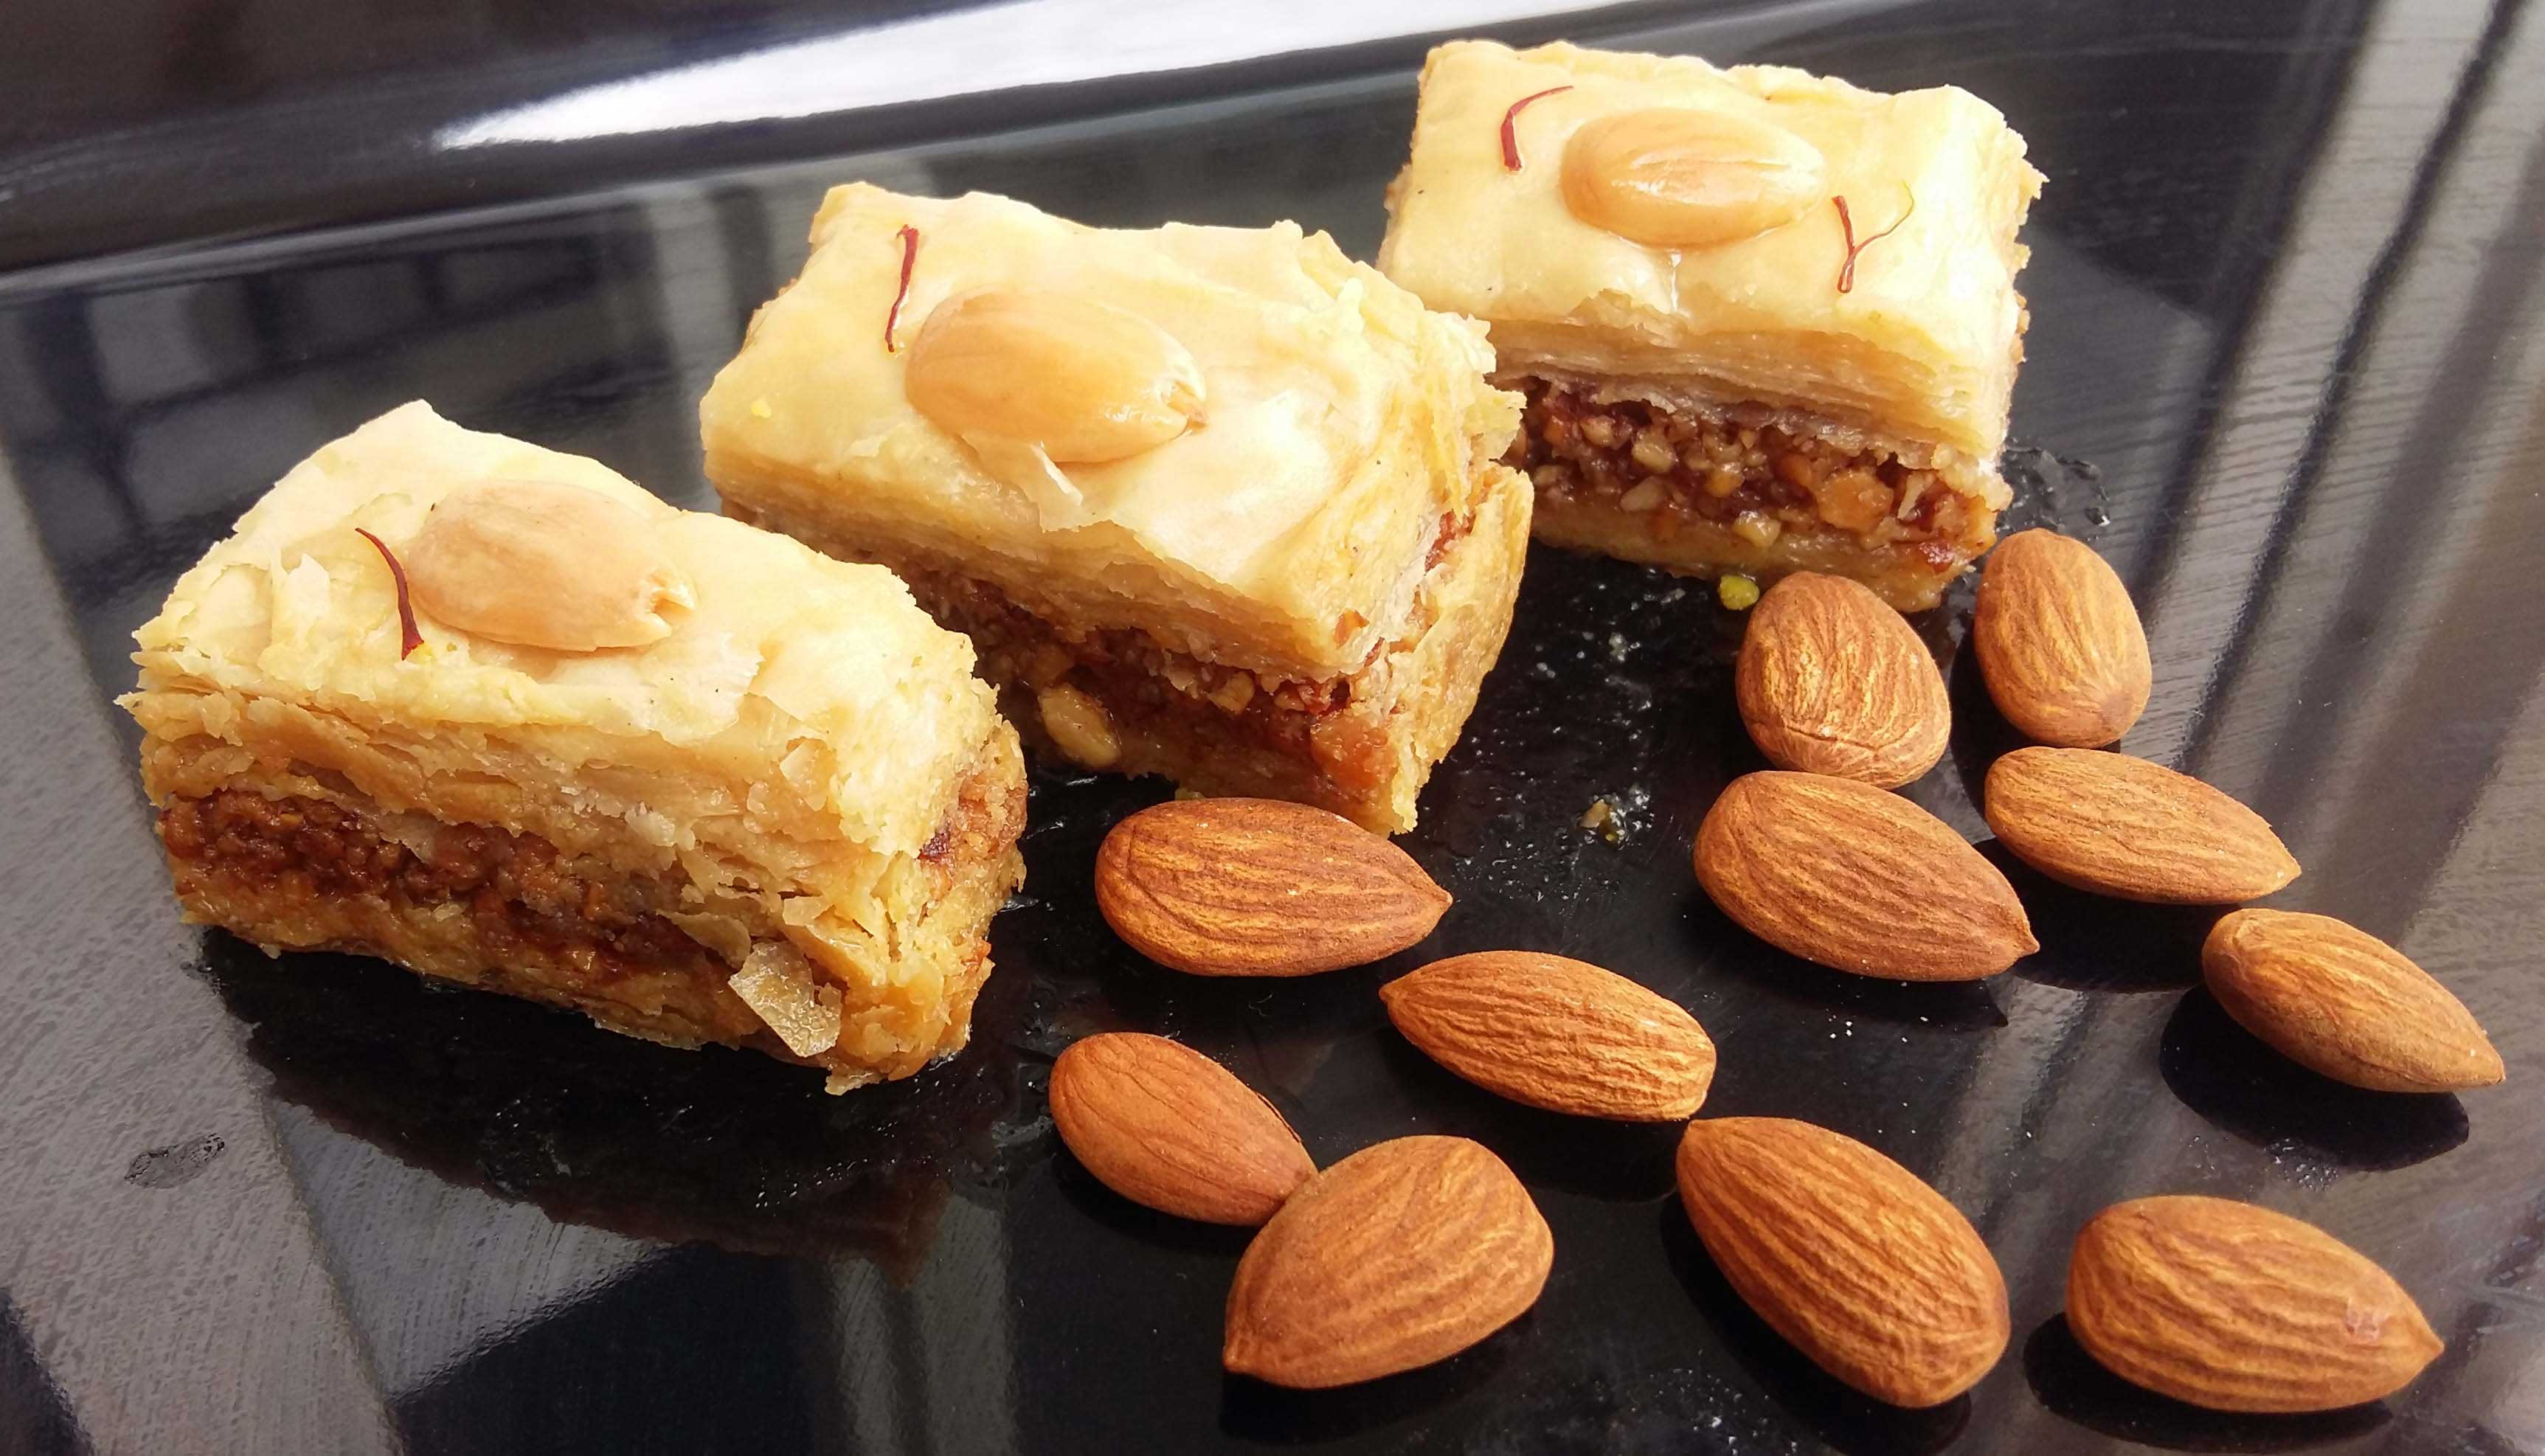 Baklava Sweets Filled with Almond